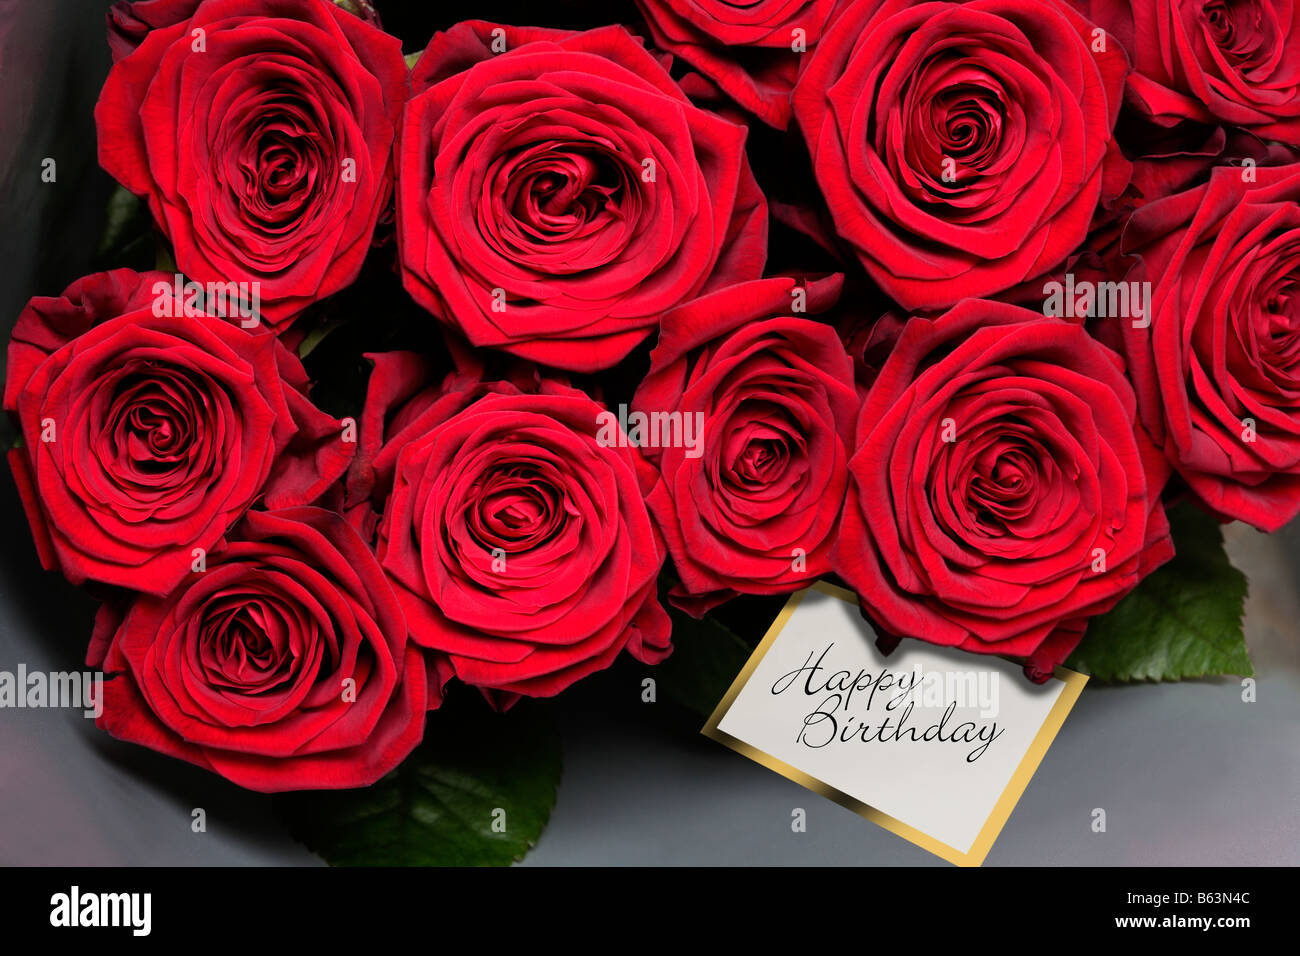 Red Roses With Happy Birthday Gift Tag